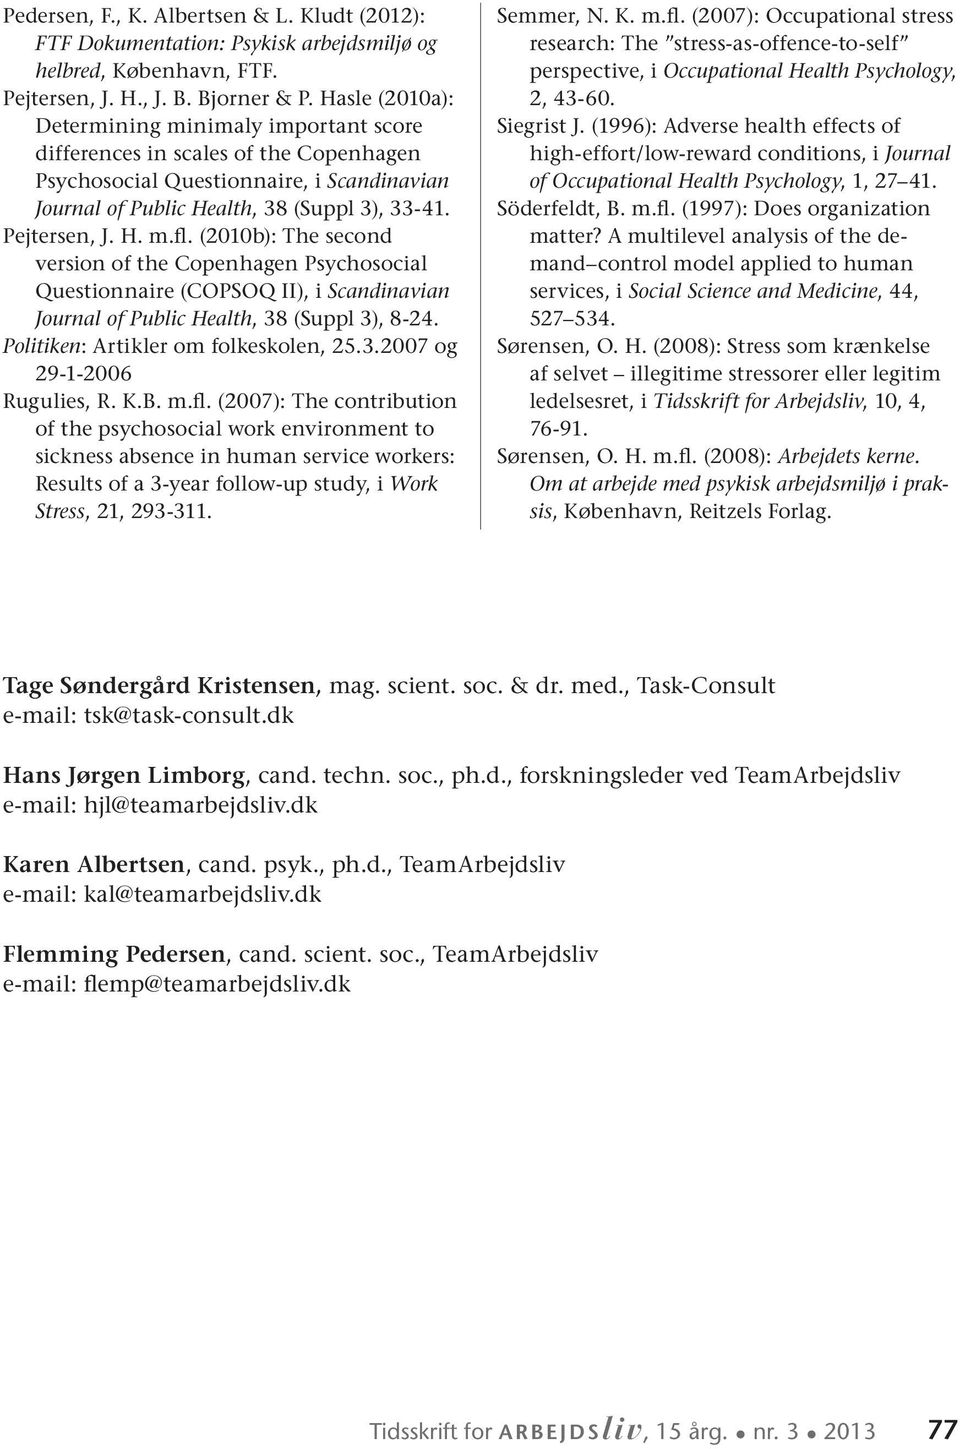 (2010b): The second version of the Copenhagen Psychosocial Questionnaire (COPSOQ II), i Scandinavian Journal of Public Health, 38 (Suppl 3), 8-24. Politiken: Artikler om folkeskolen, 25.3.2007 og 29-1-2006 Rugulies, R.